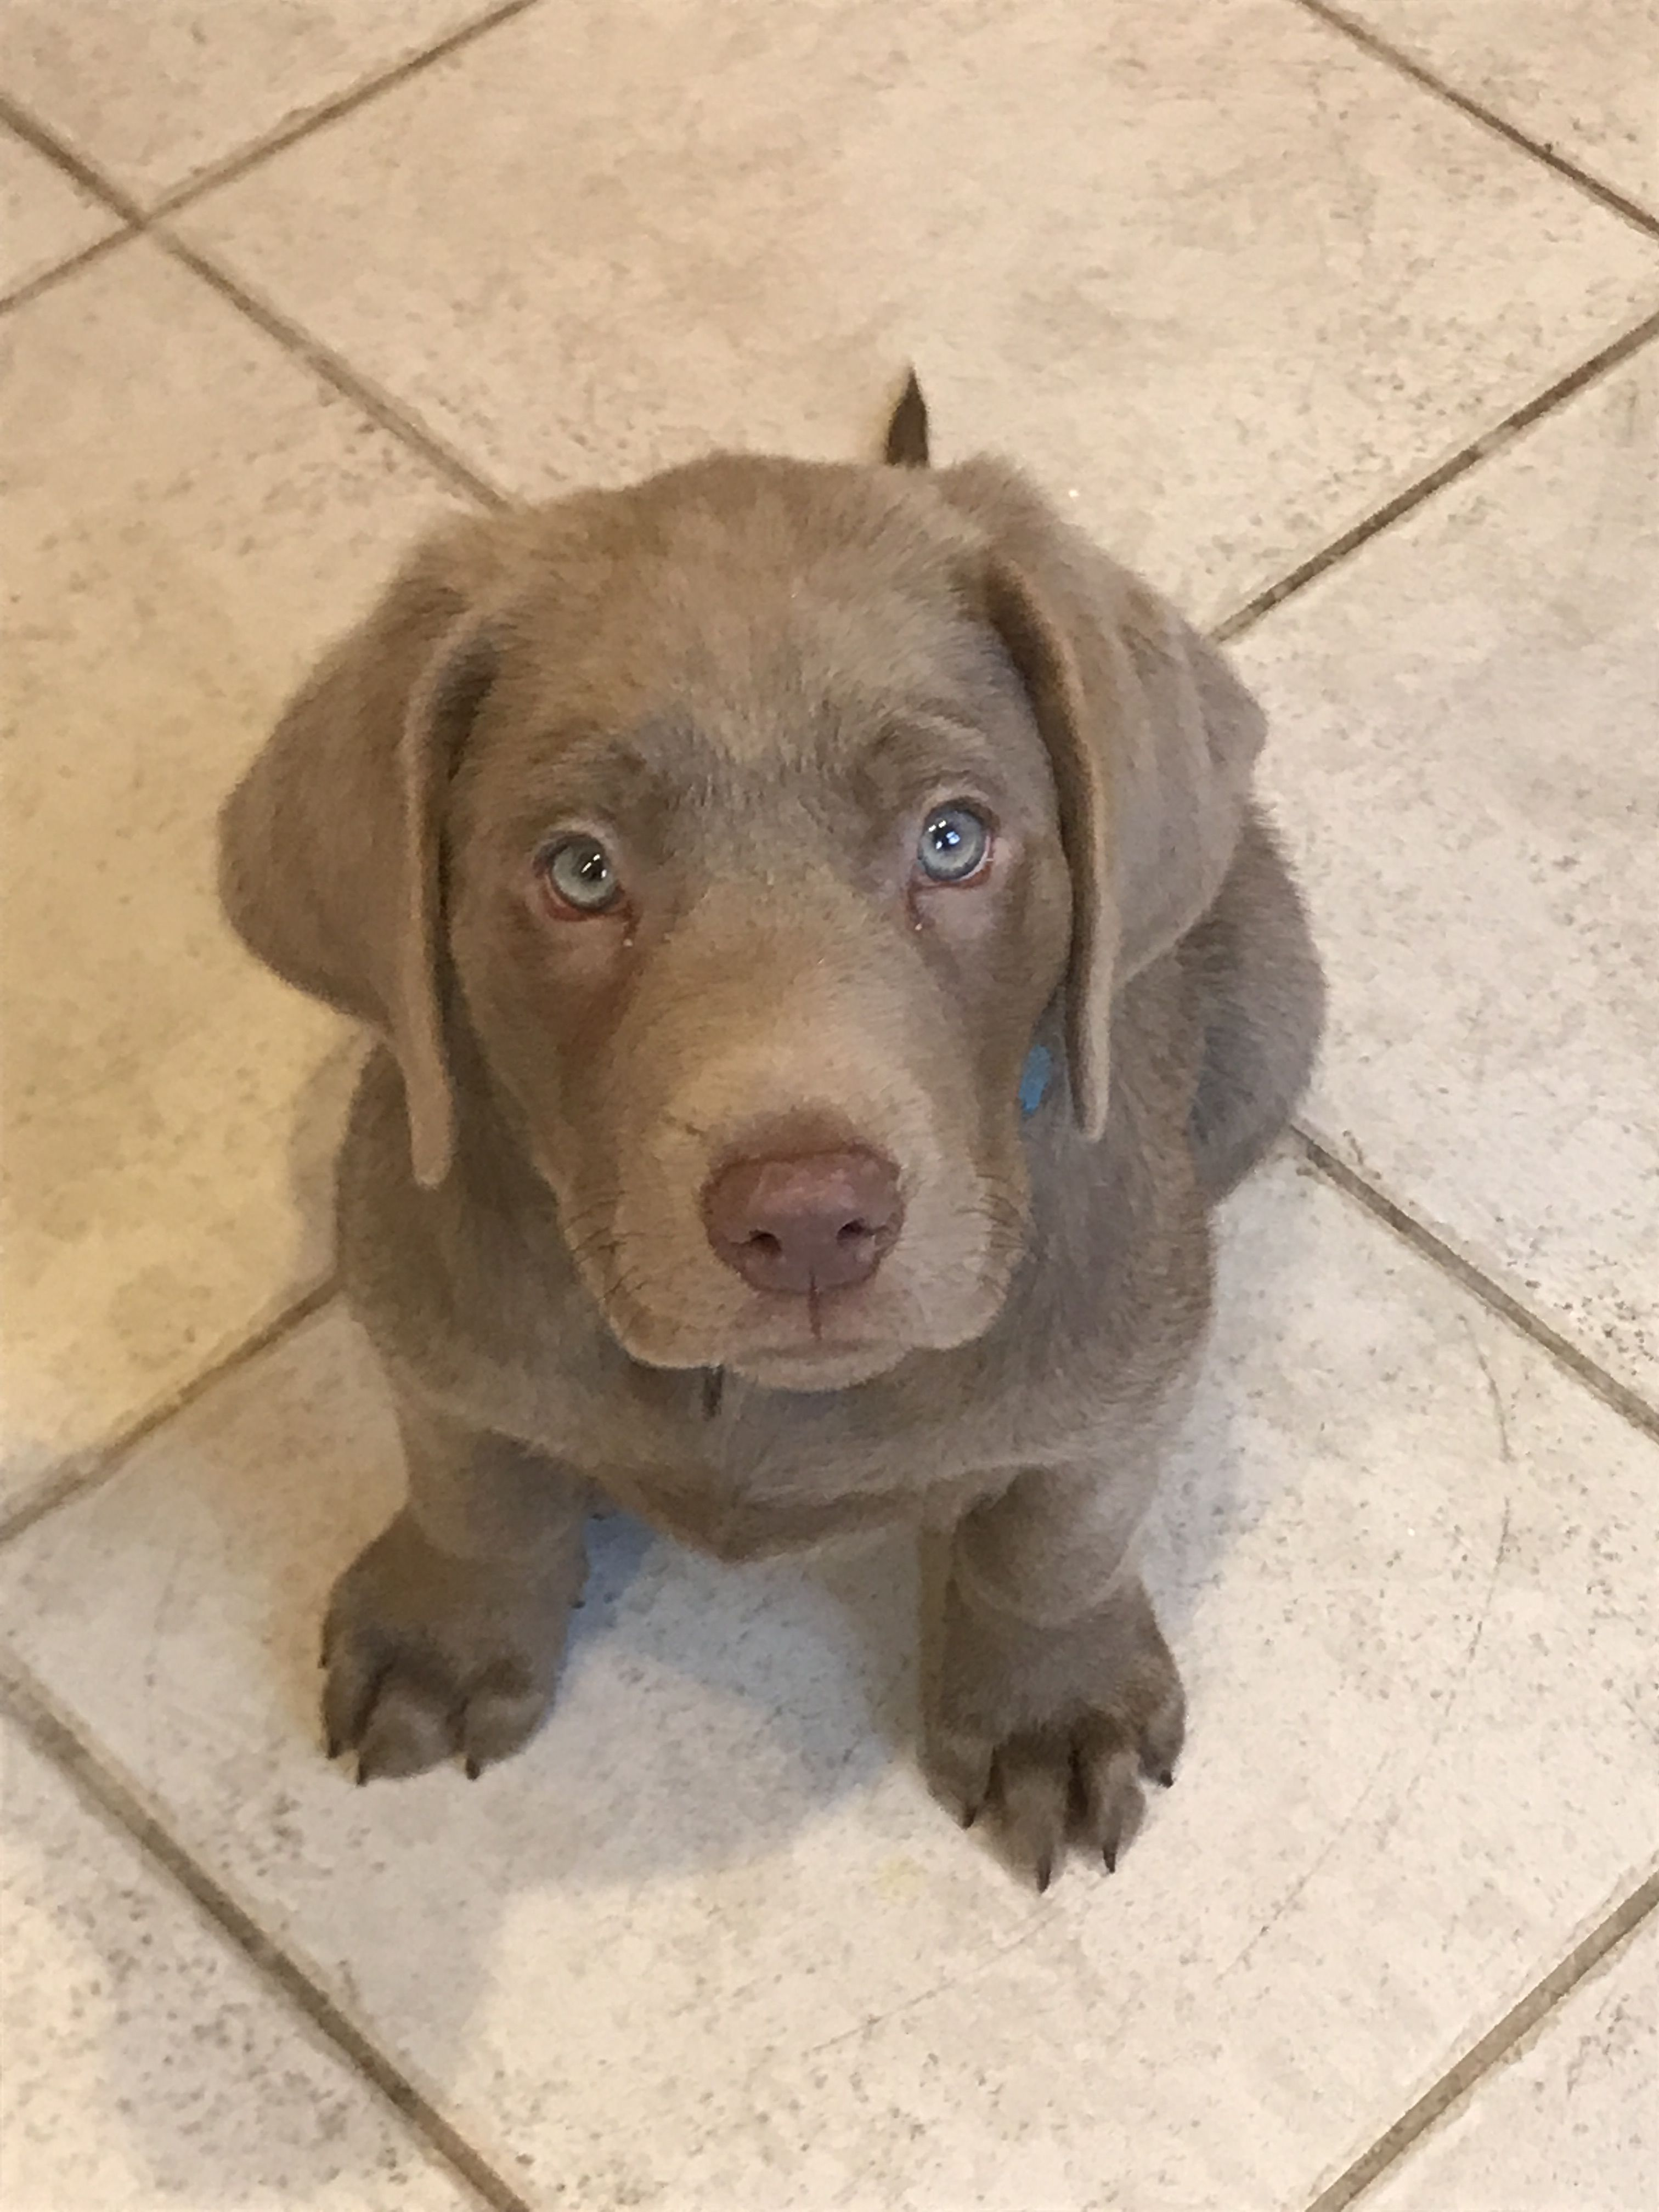 Silver lab puppies for sale in california